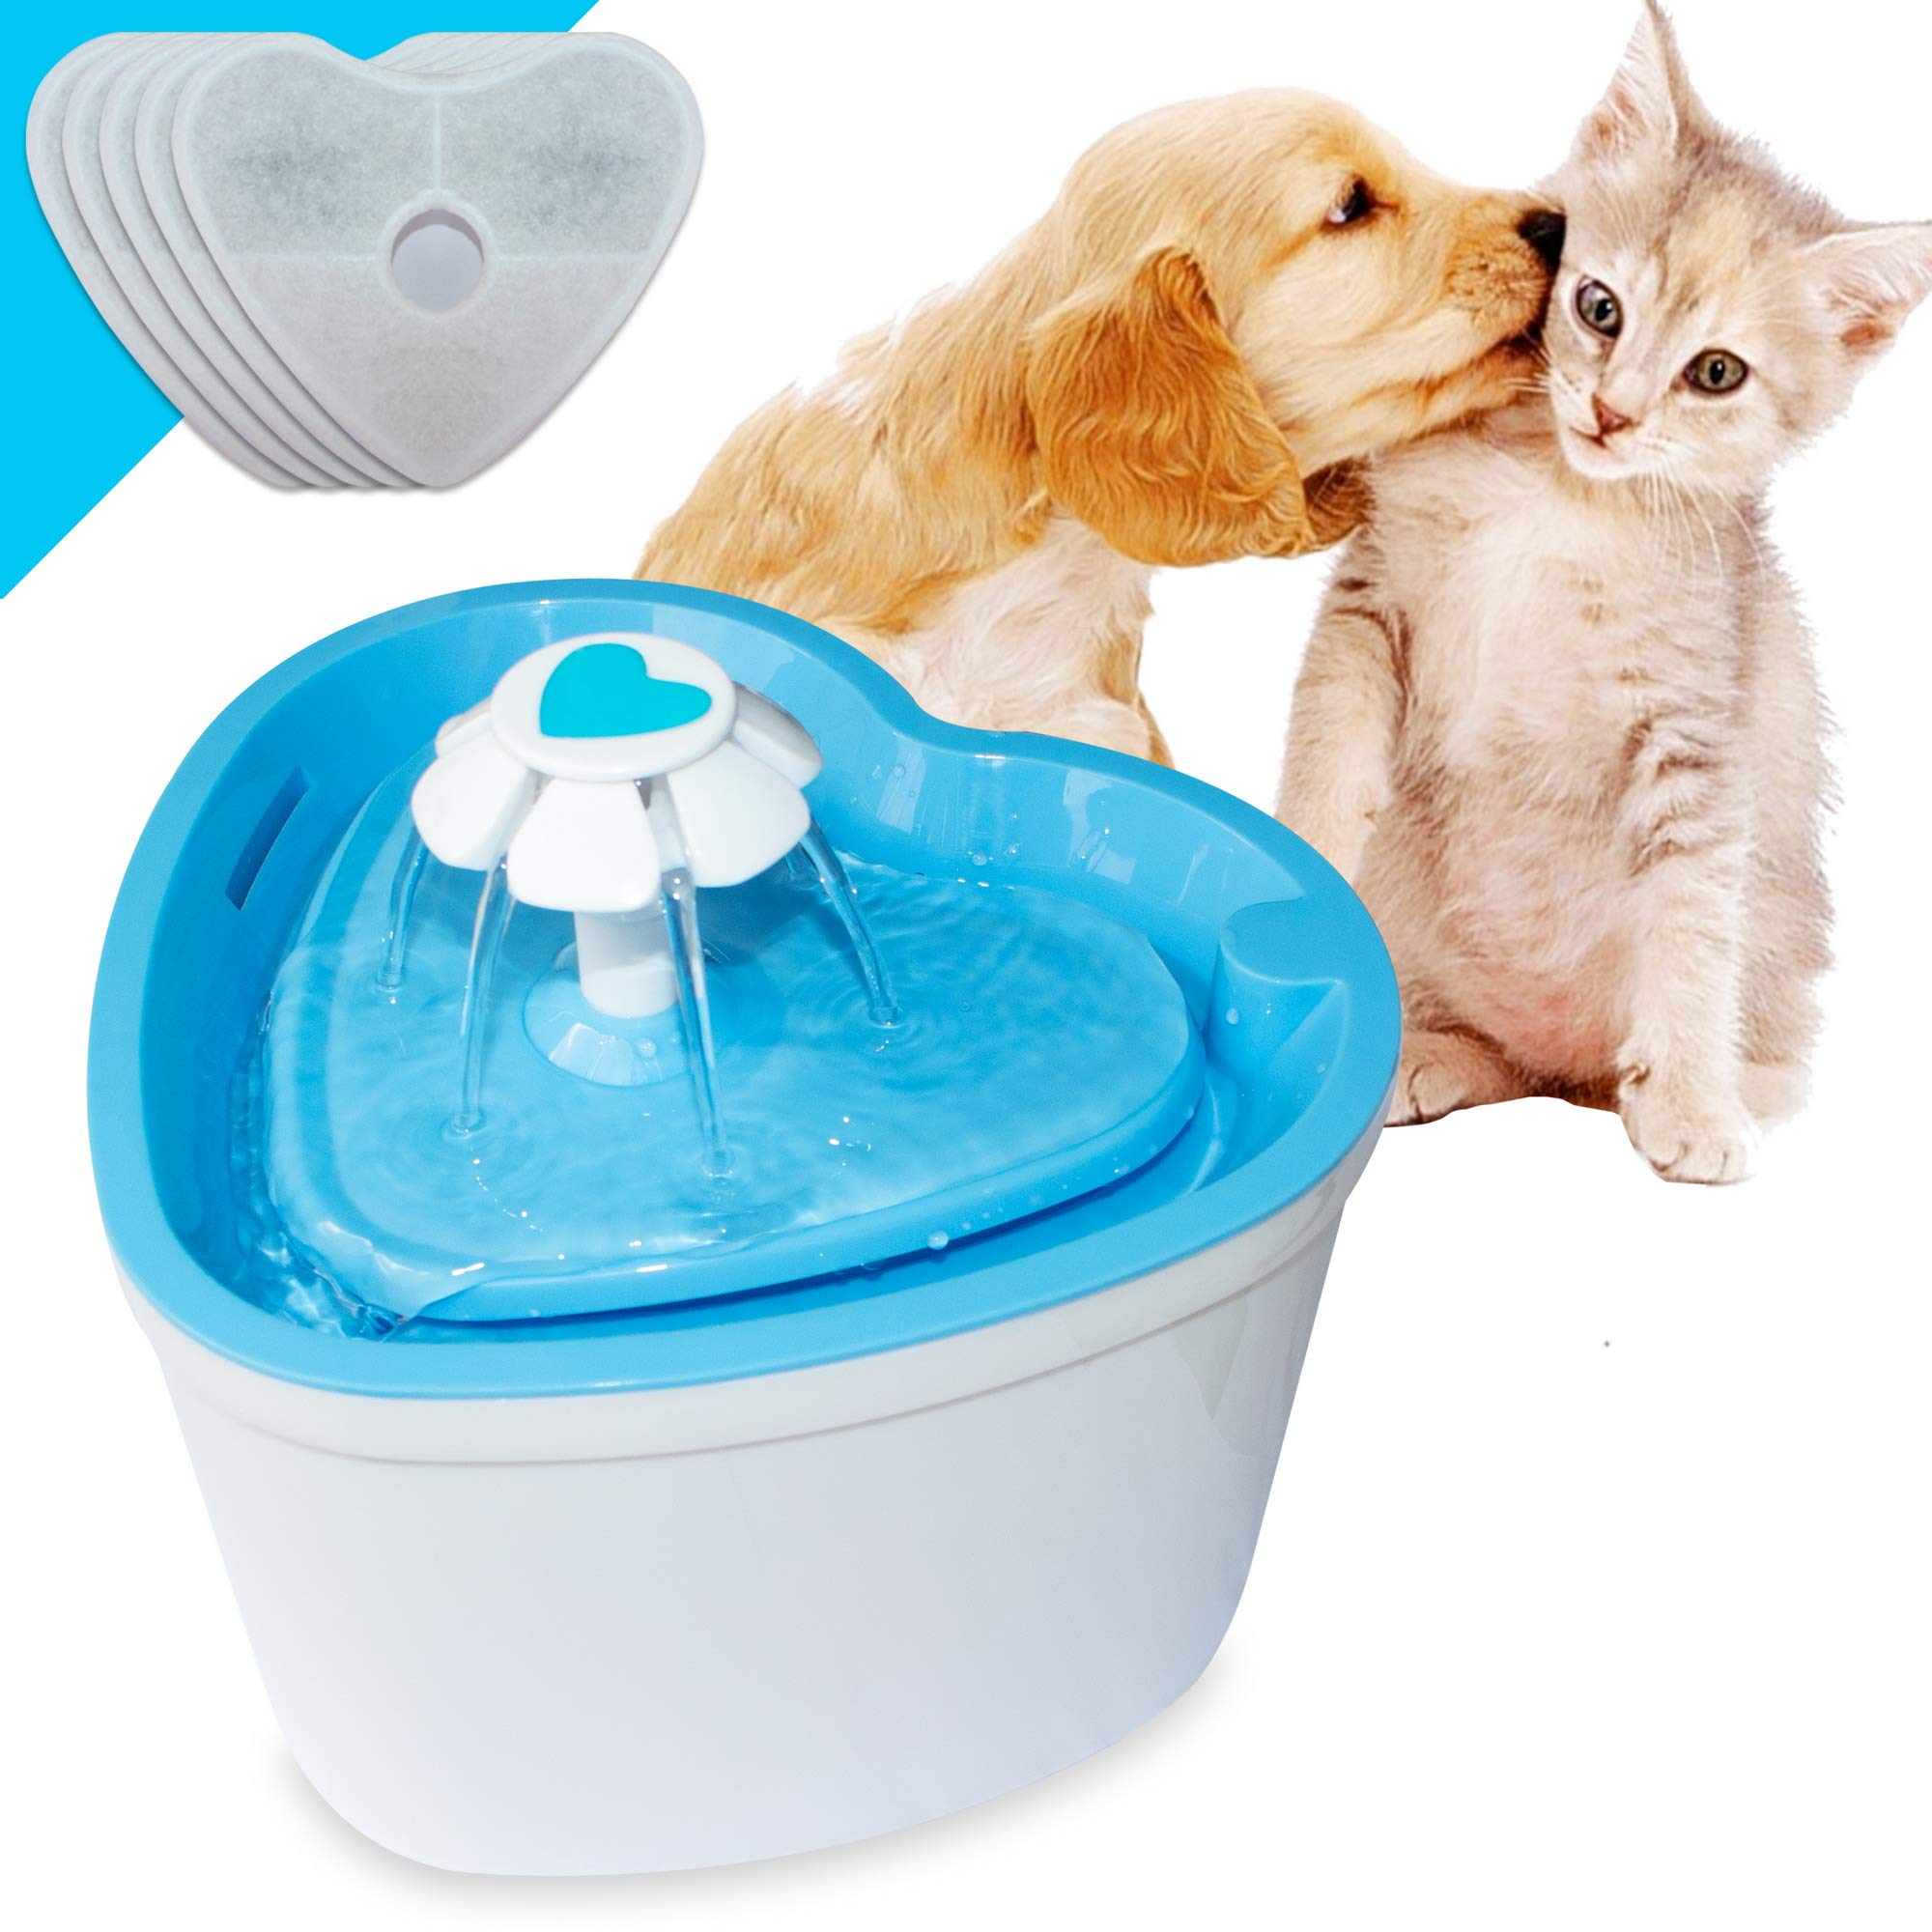 LOVSHARE Pet Water Fountain- Healthy and Hygienic Drinking Fountain 2L Super Quiet Flower Automatic Electric Water Bowl with 4 Replacement Filters for Dogs, Cats, Birds and Small Animals